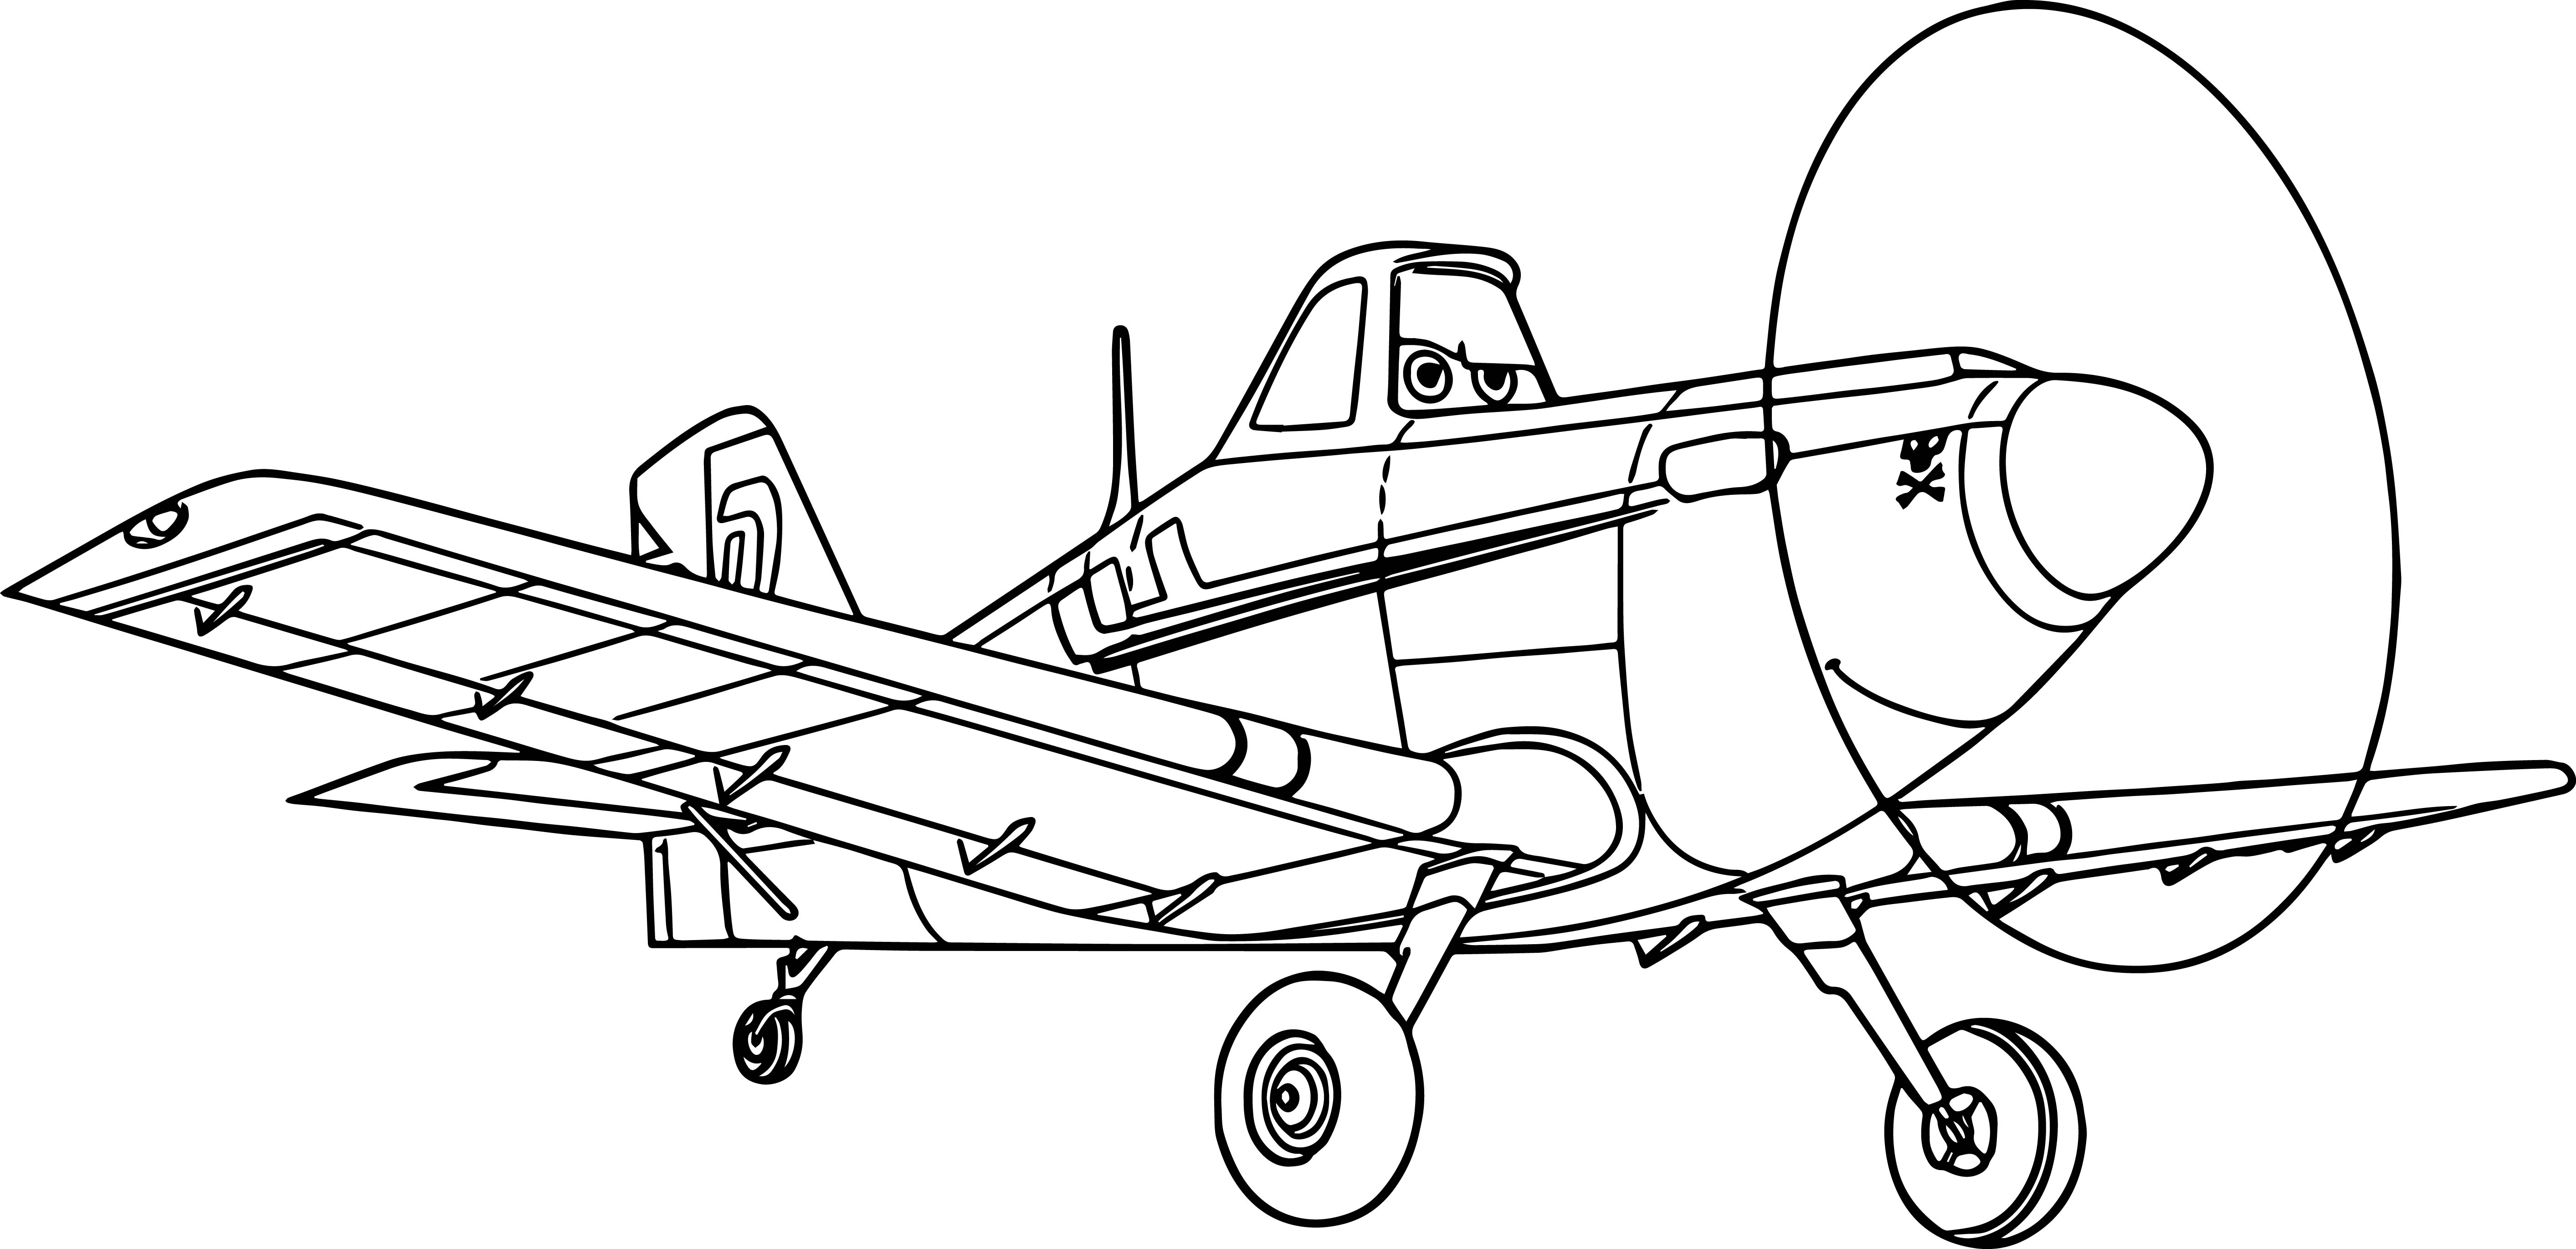 Disney Planes Coloring Pages : Disney planes dottie coloring pages